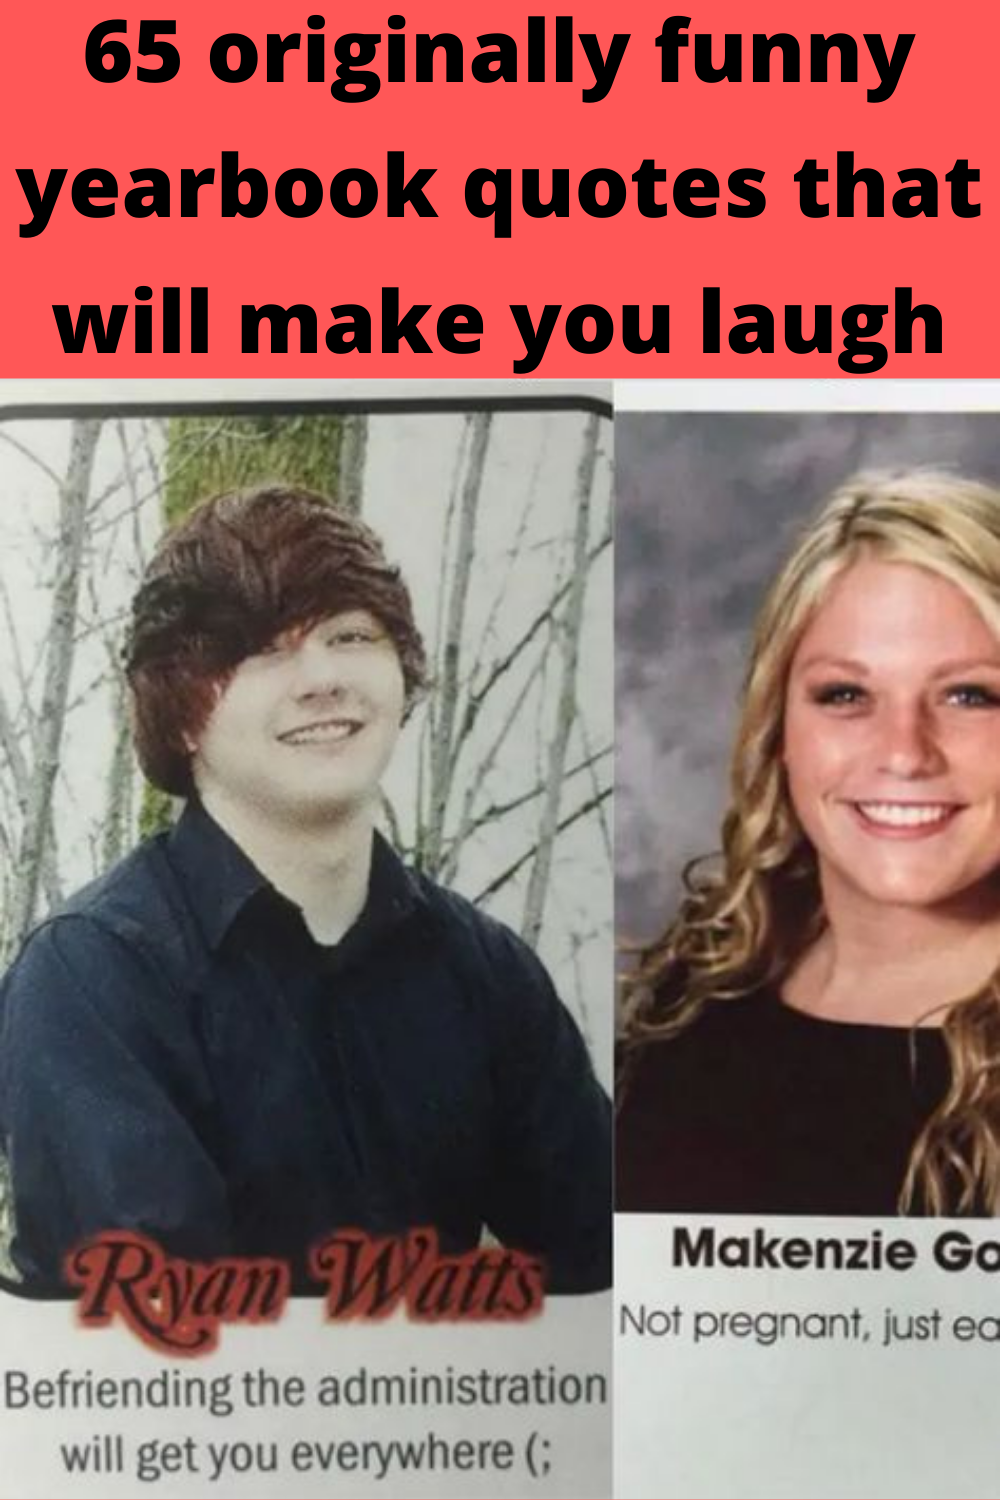 65 Originally Funny Yearbook Quotes That Will Make You Laugh In 2020 Funny Yearbook Quotes Funny Yearbook Beautiful Braided Hair